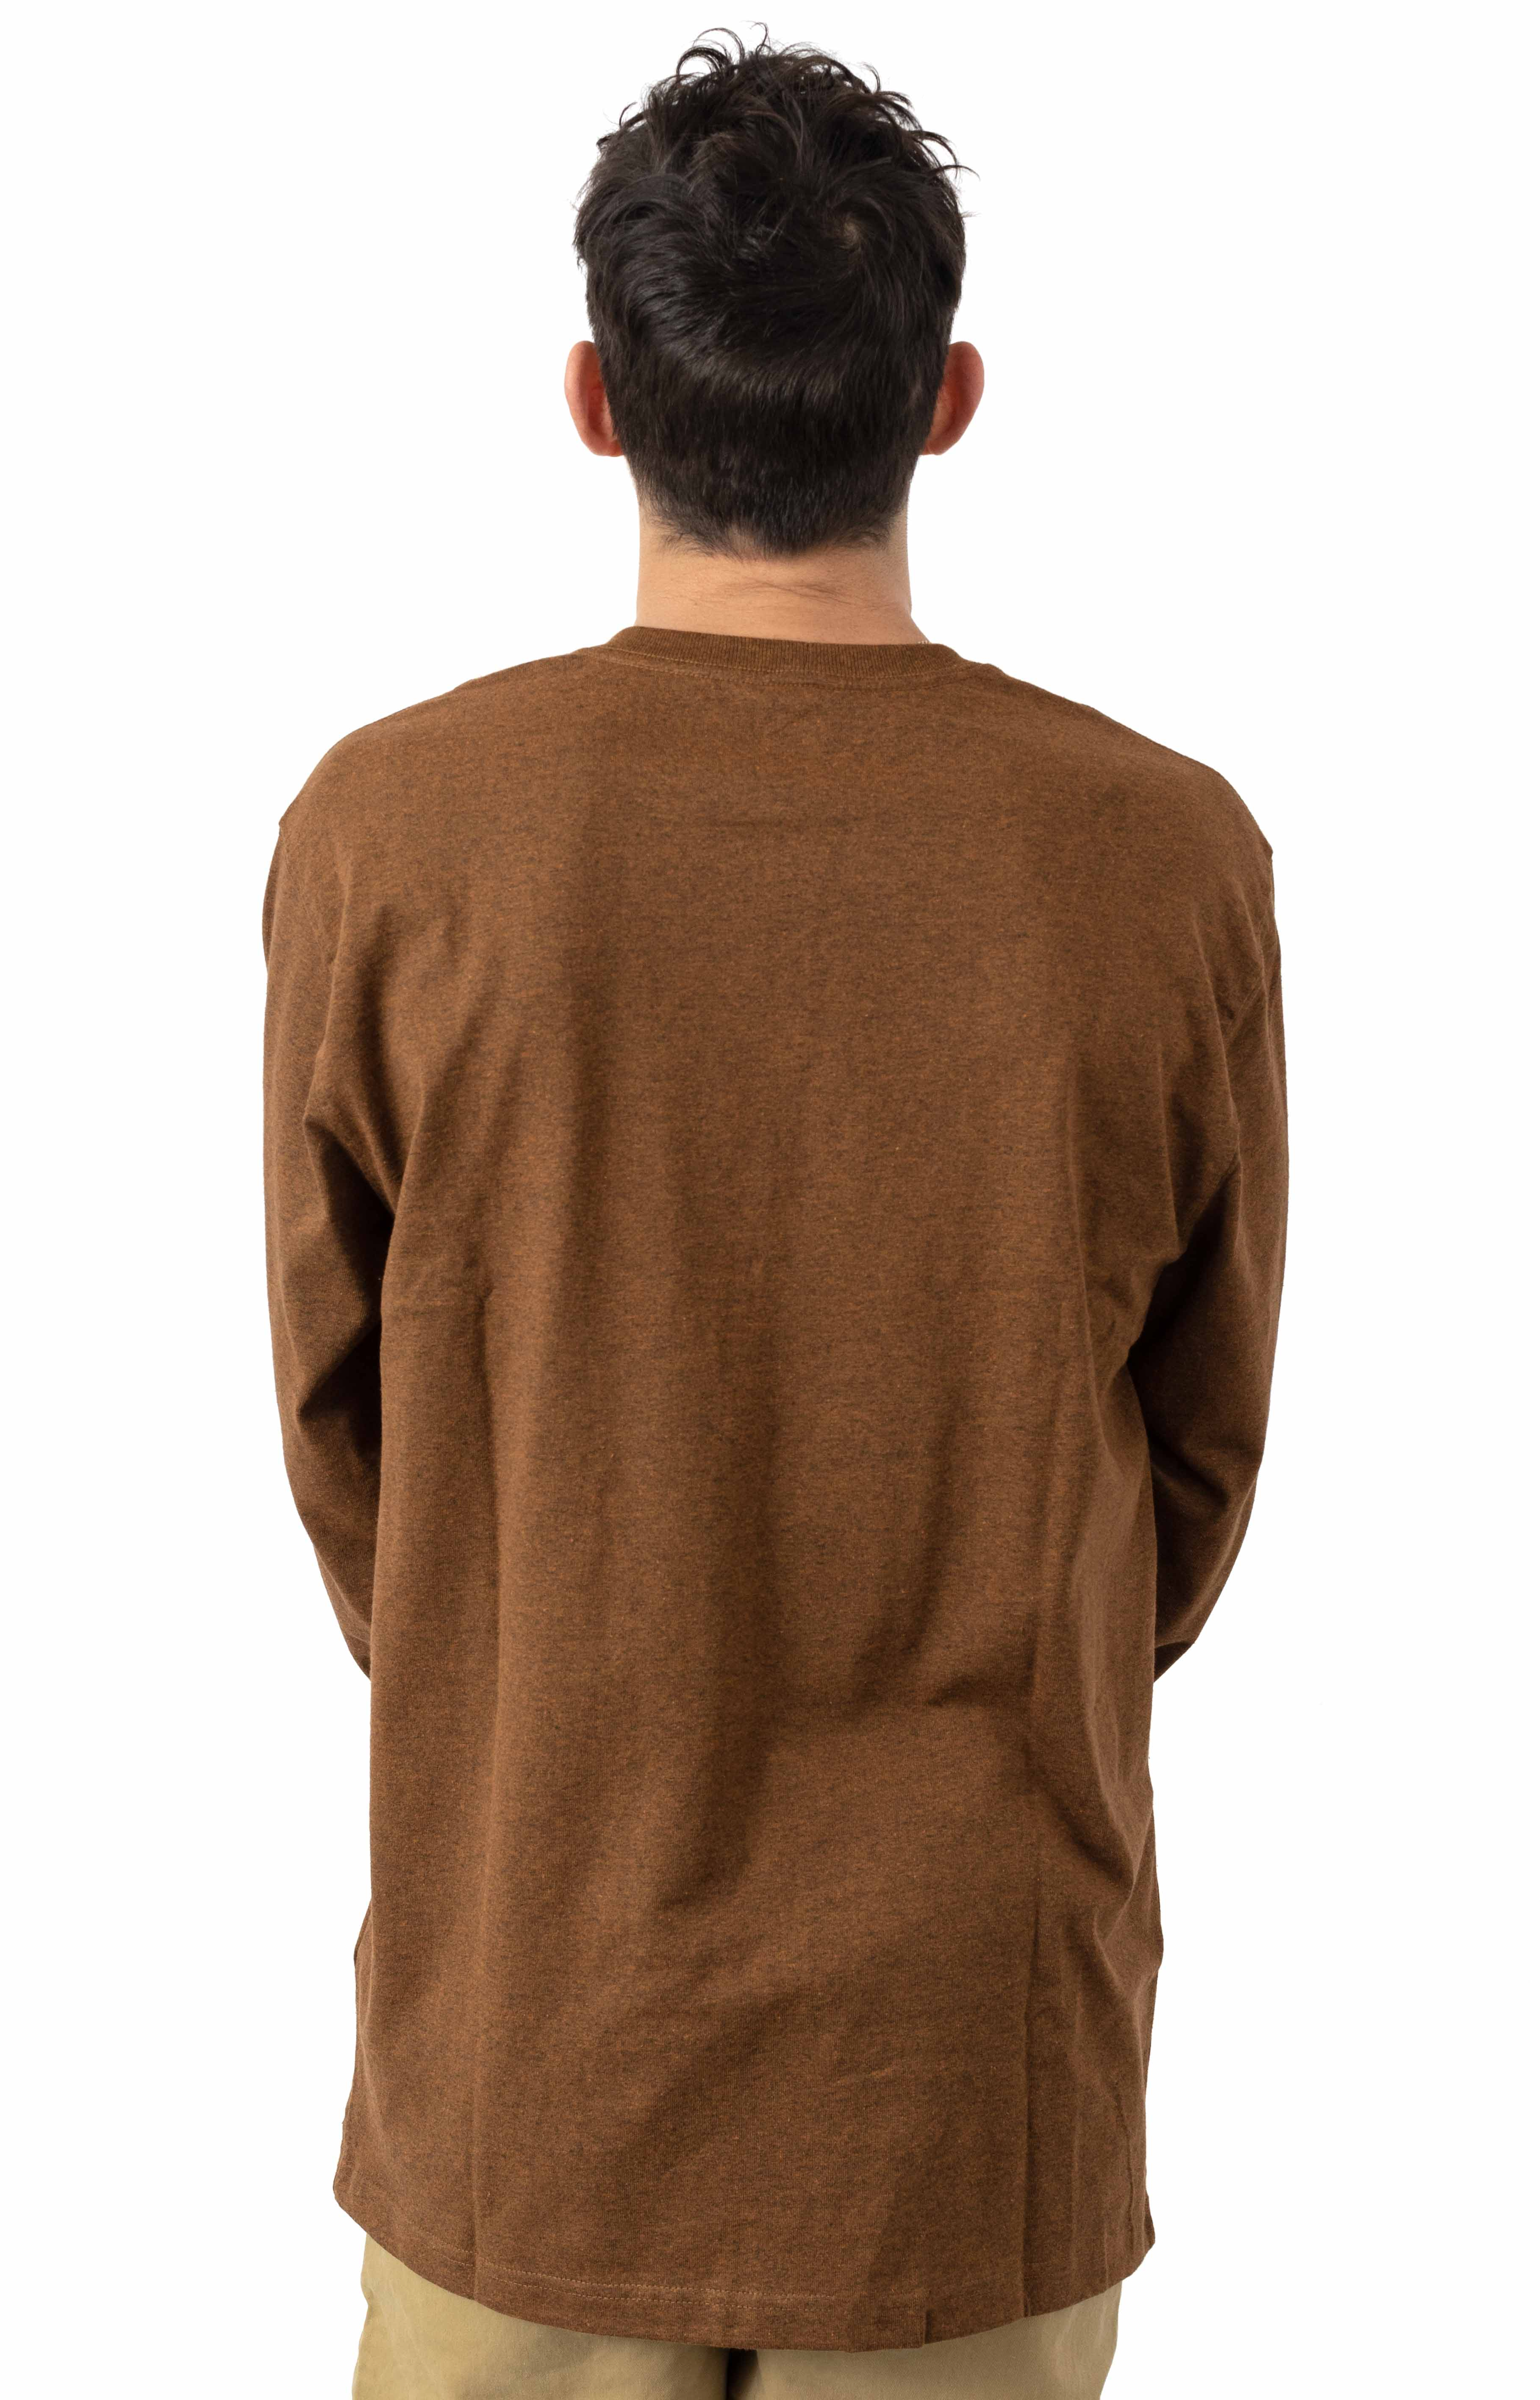 (K231) Signature Sleeve Logo L/S Shirt - Oiled Walnut Heather  3